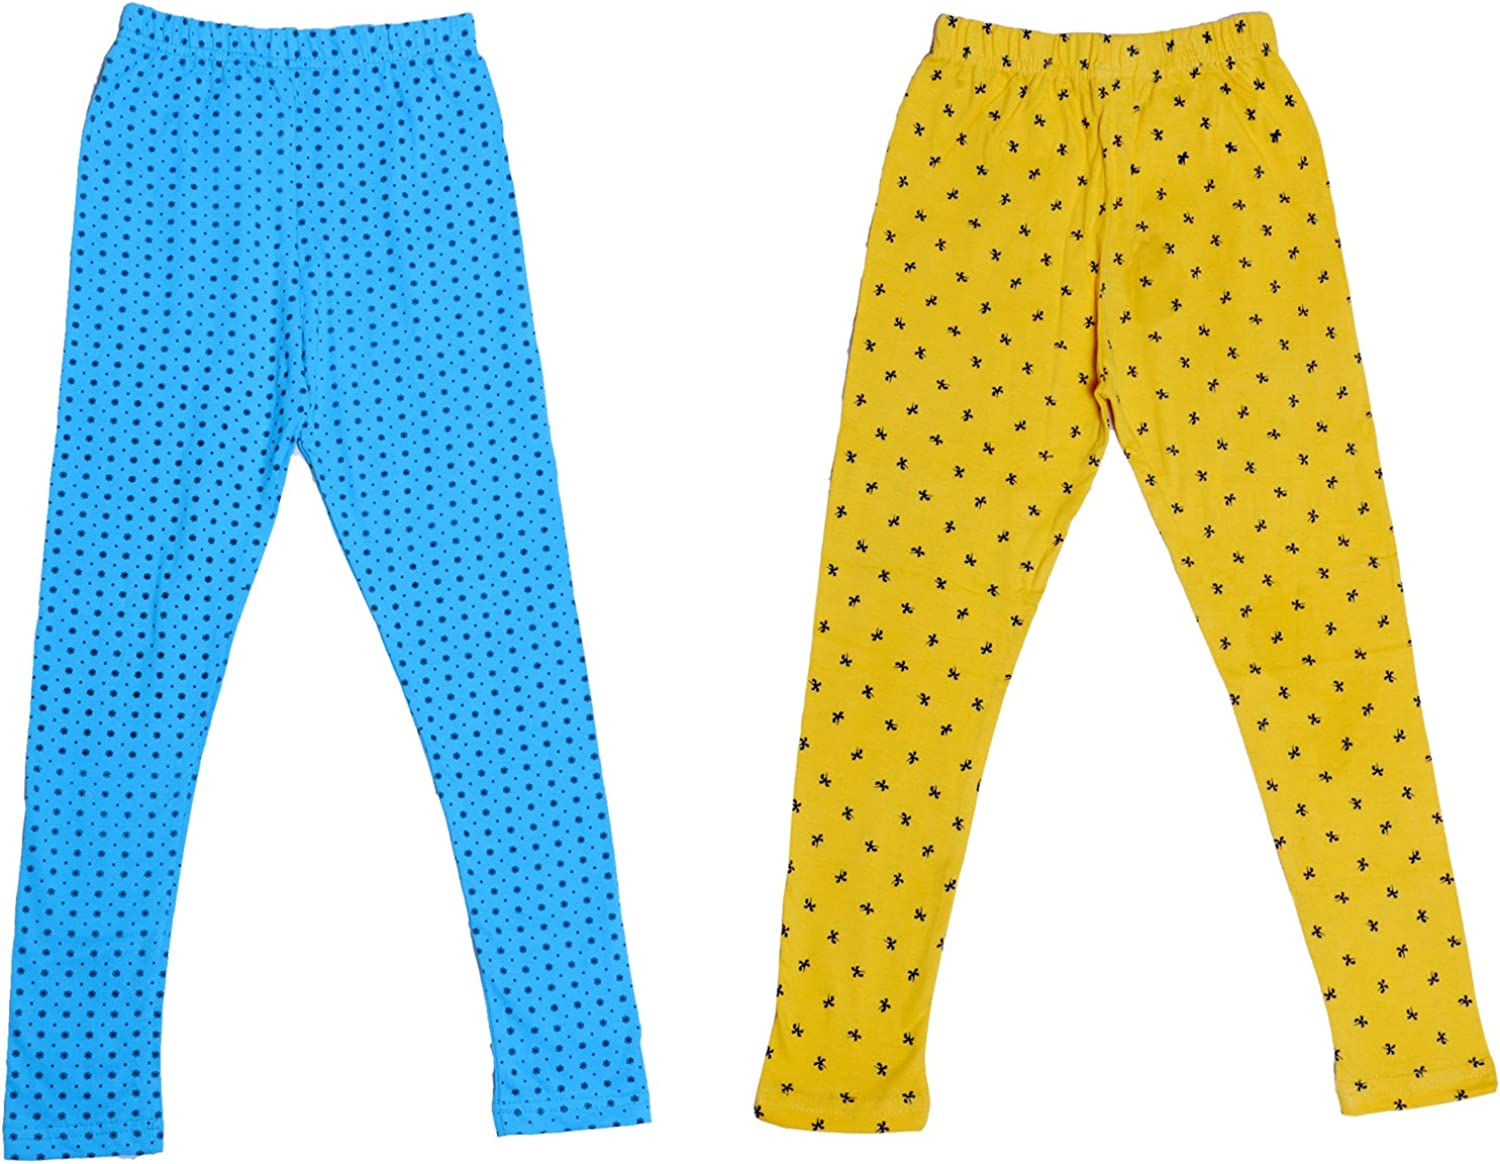 Pack of 3 Indistar Girls Super Soft and Stylish Cotton Printed Legging Pants